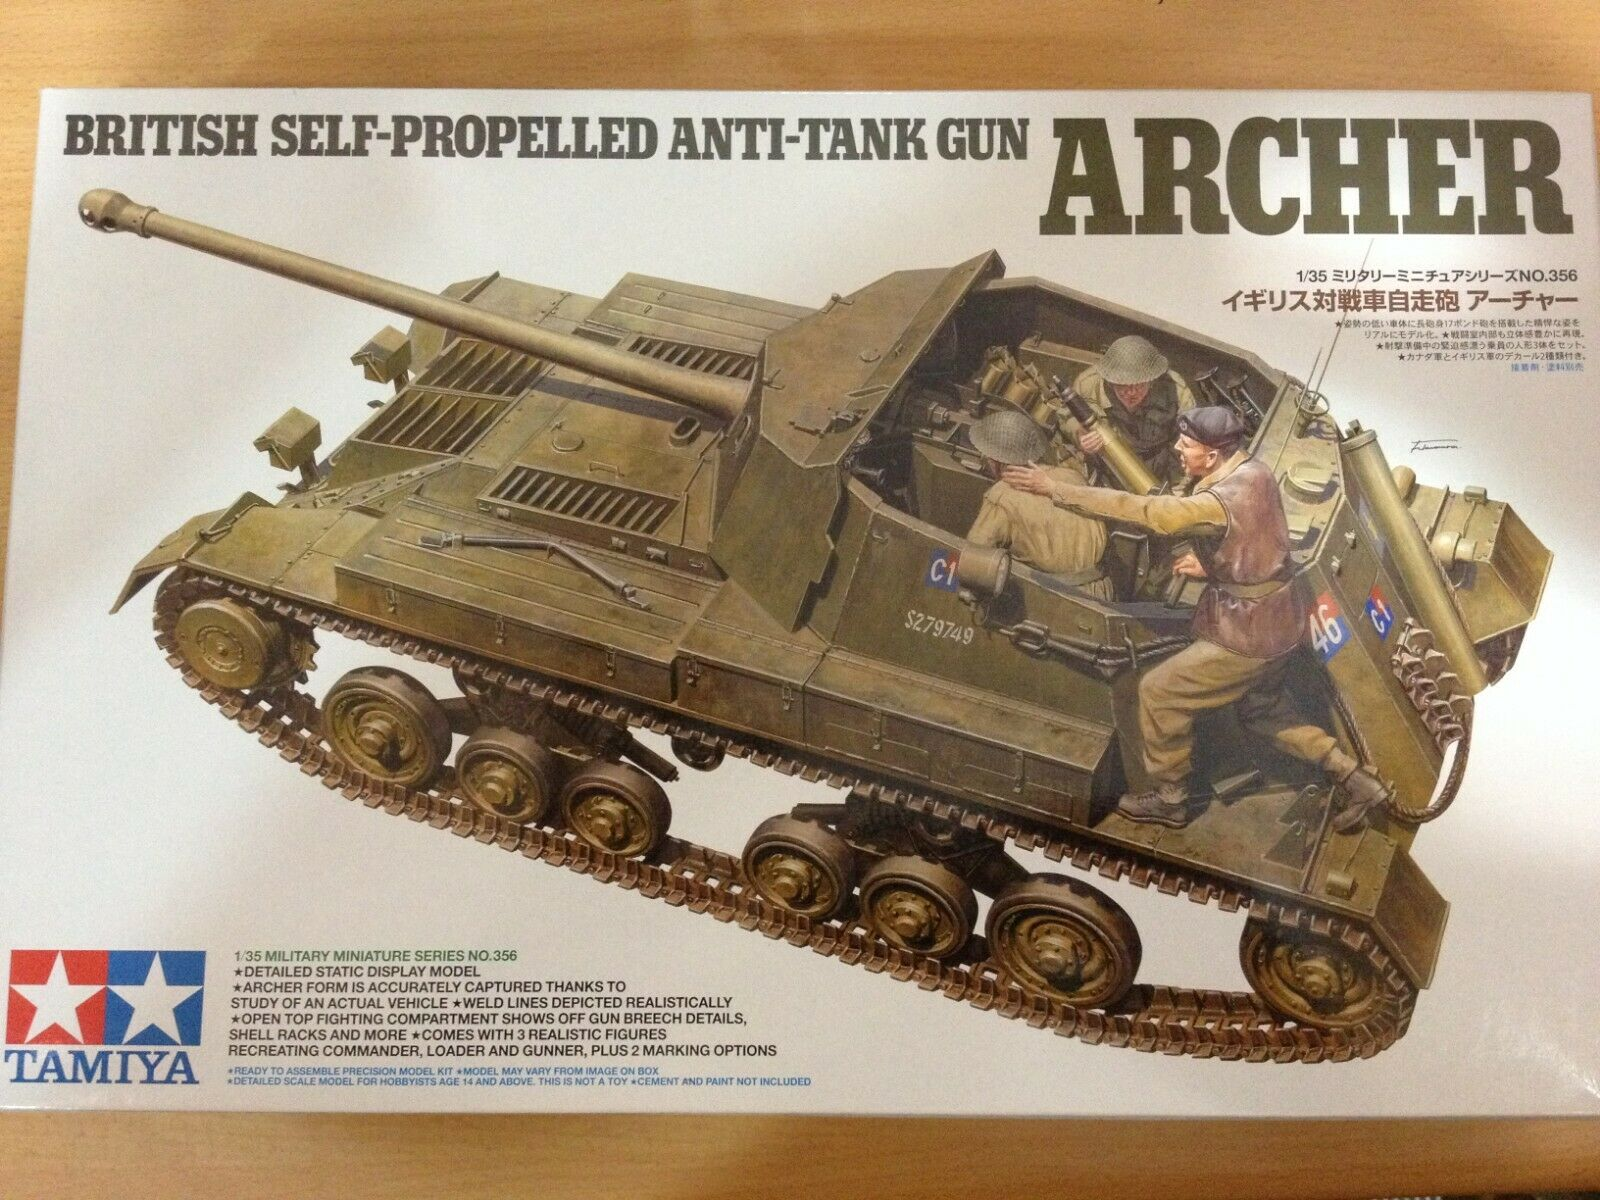 Tamiya Maqueta,escala 1 35,British self-propelled ARCHER,ref.35356